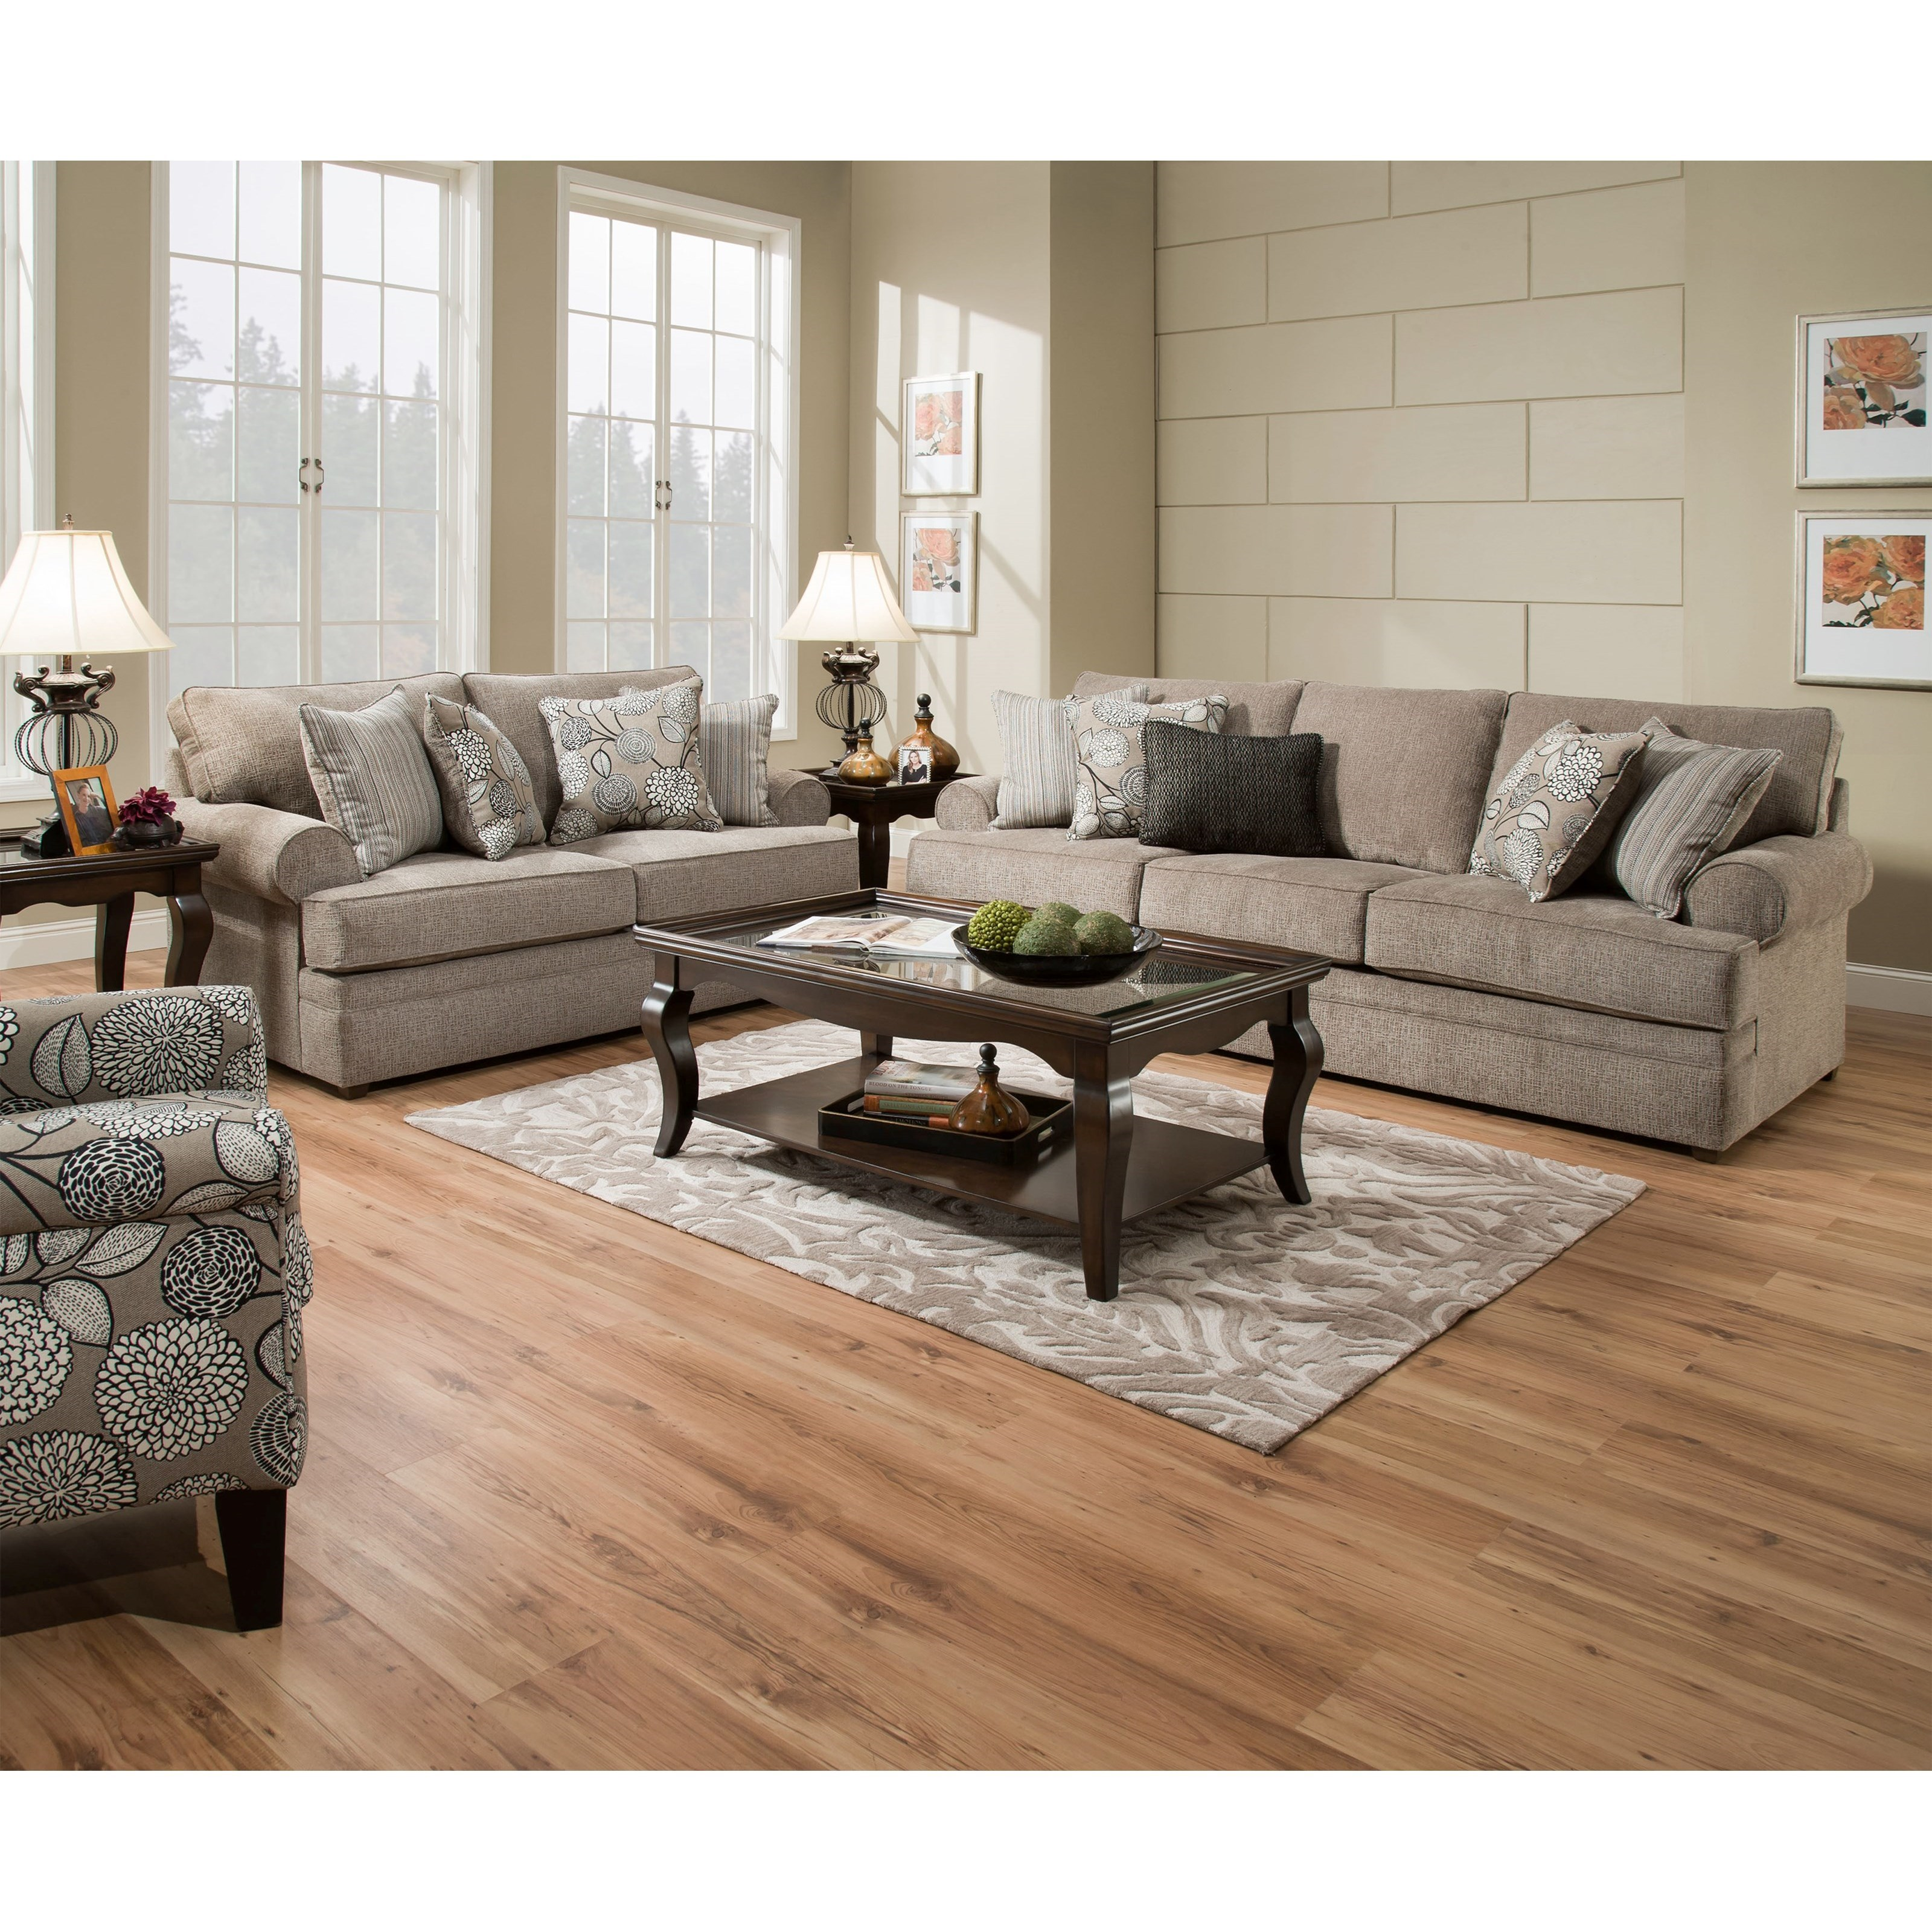 Simmons Upholstery 8530 BR Transitional Sofa With Rolled